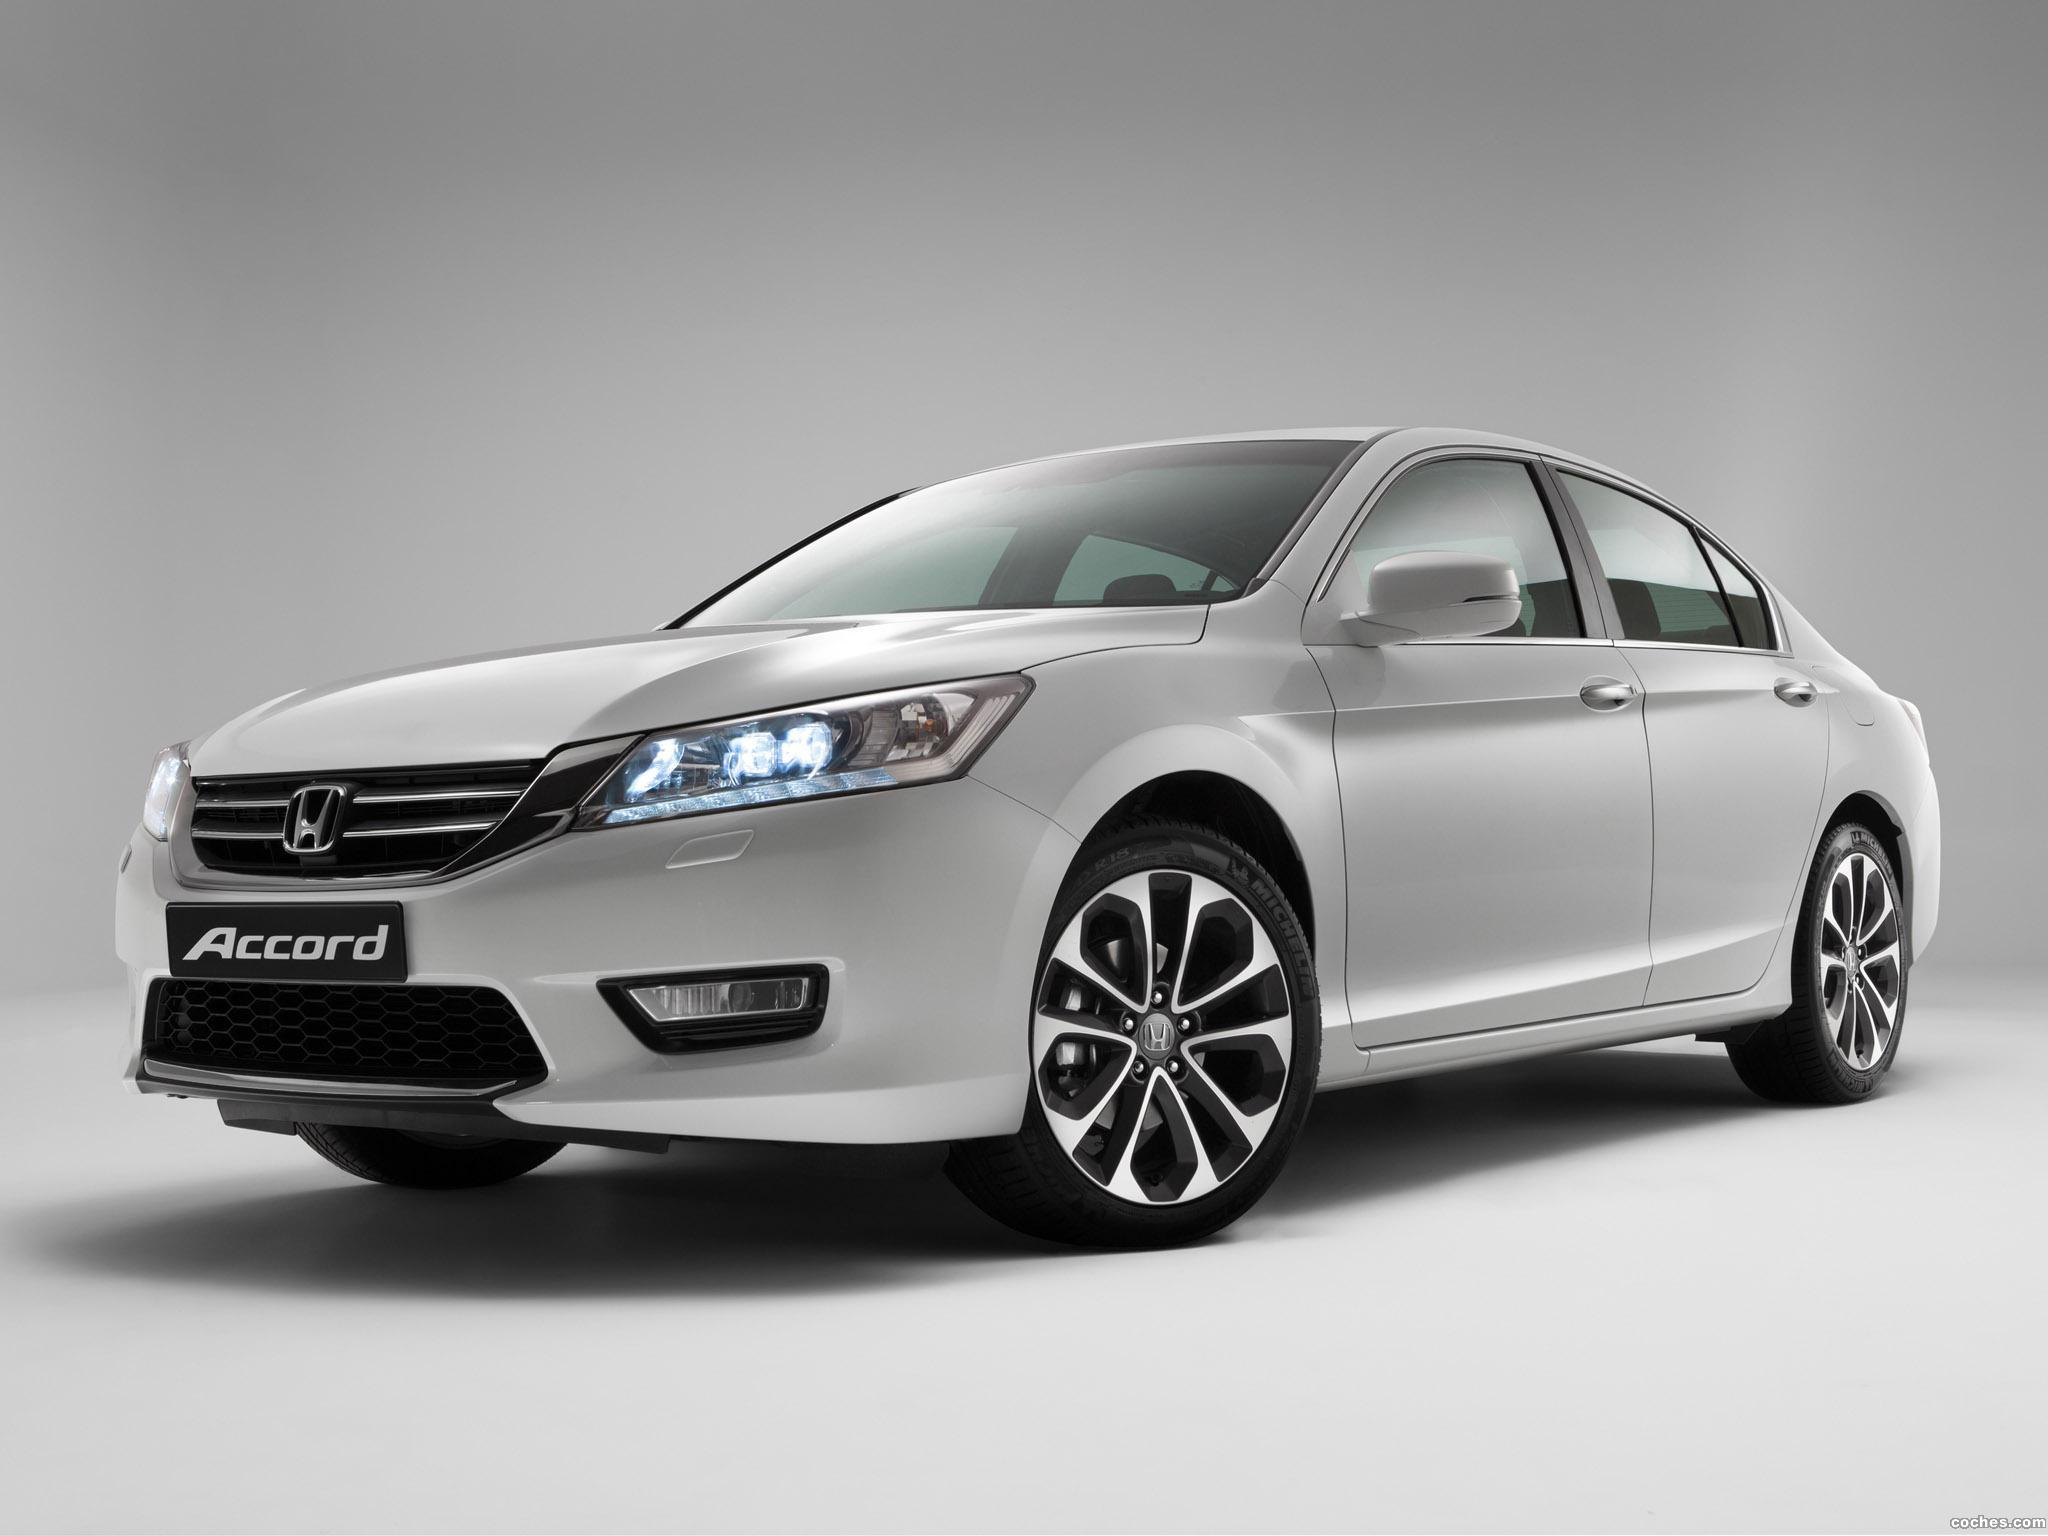 Foto 0 de Honda Accord Sedan 2013